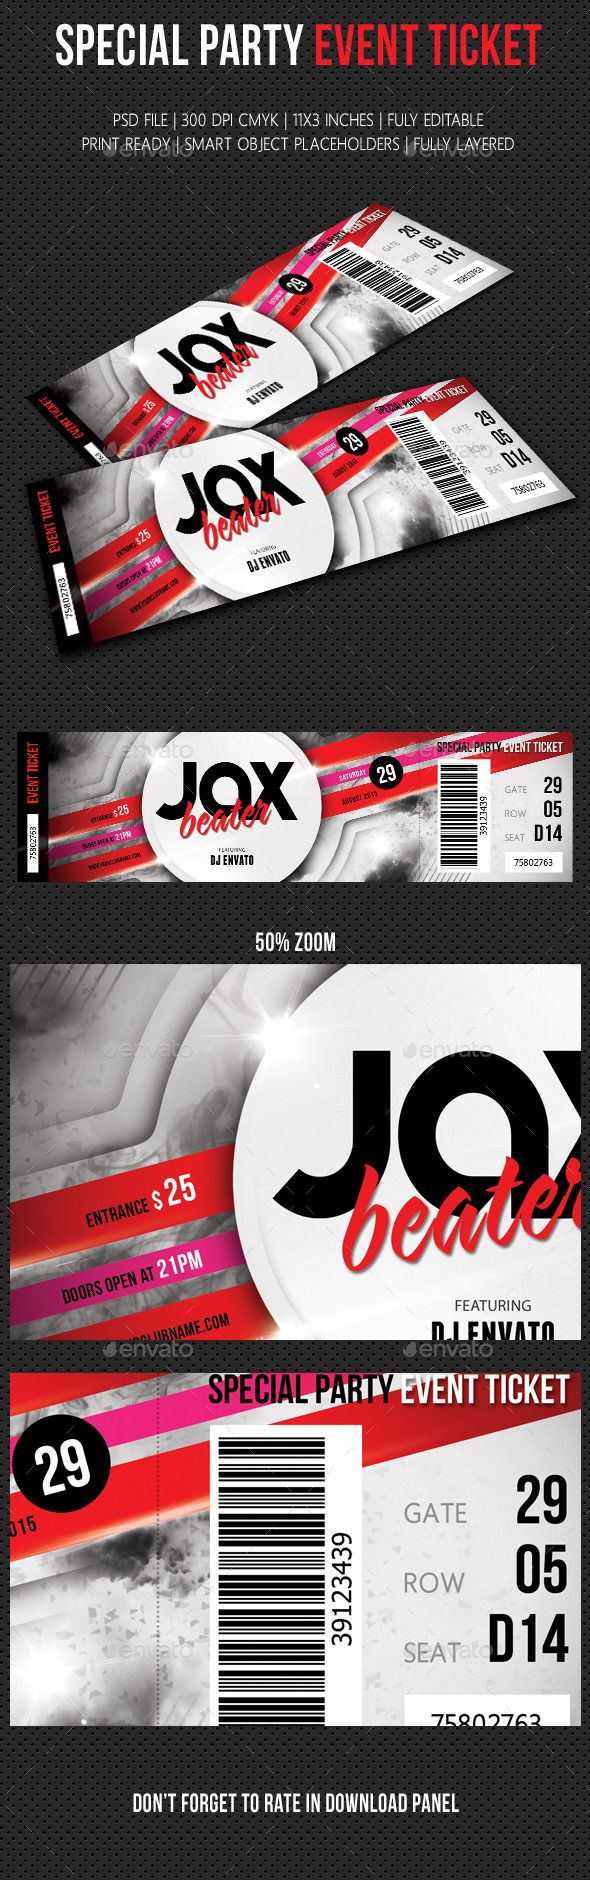 Best Event Tickets Ideas On Pinterest Ticket Design Ticket